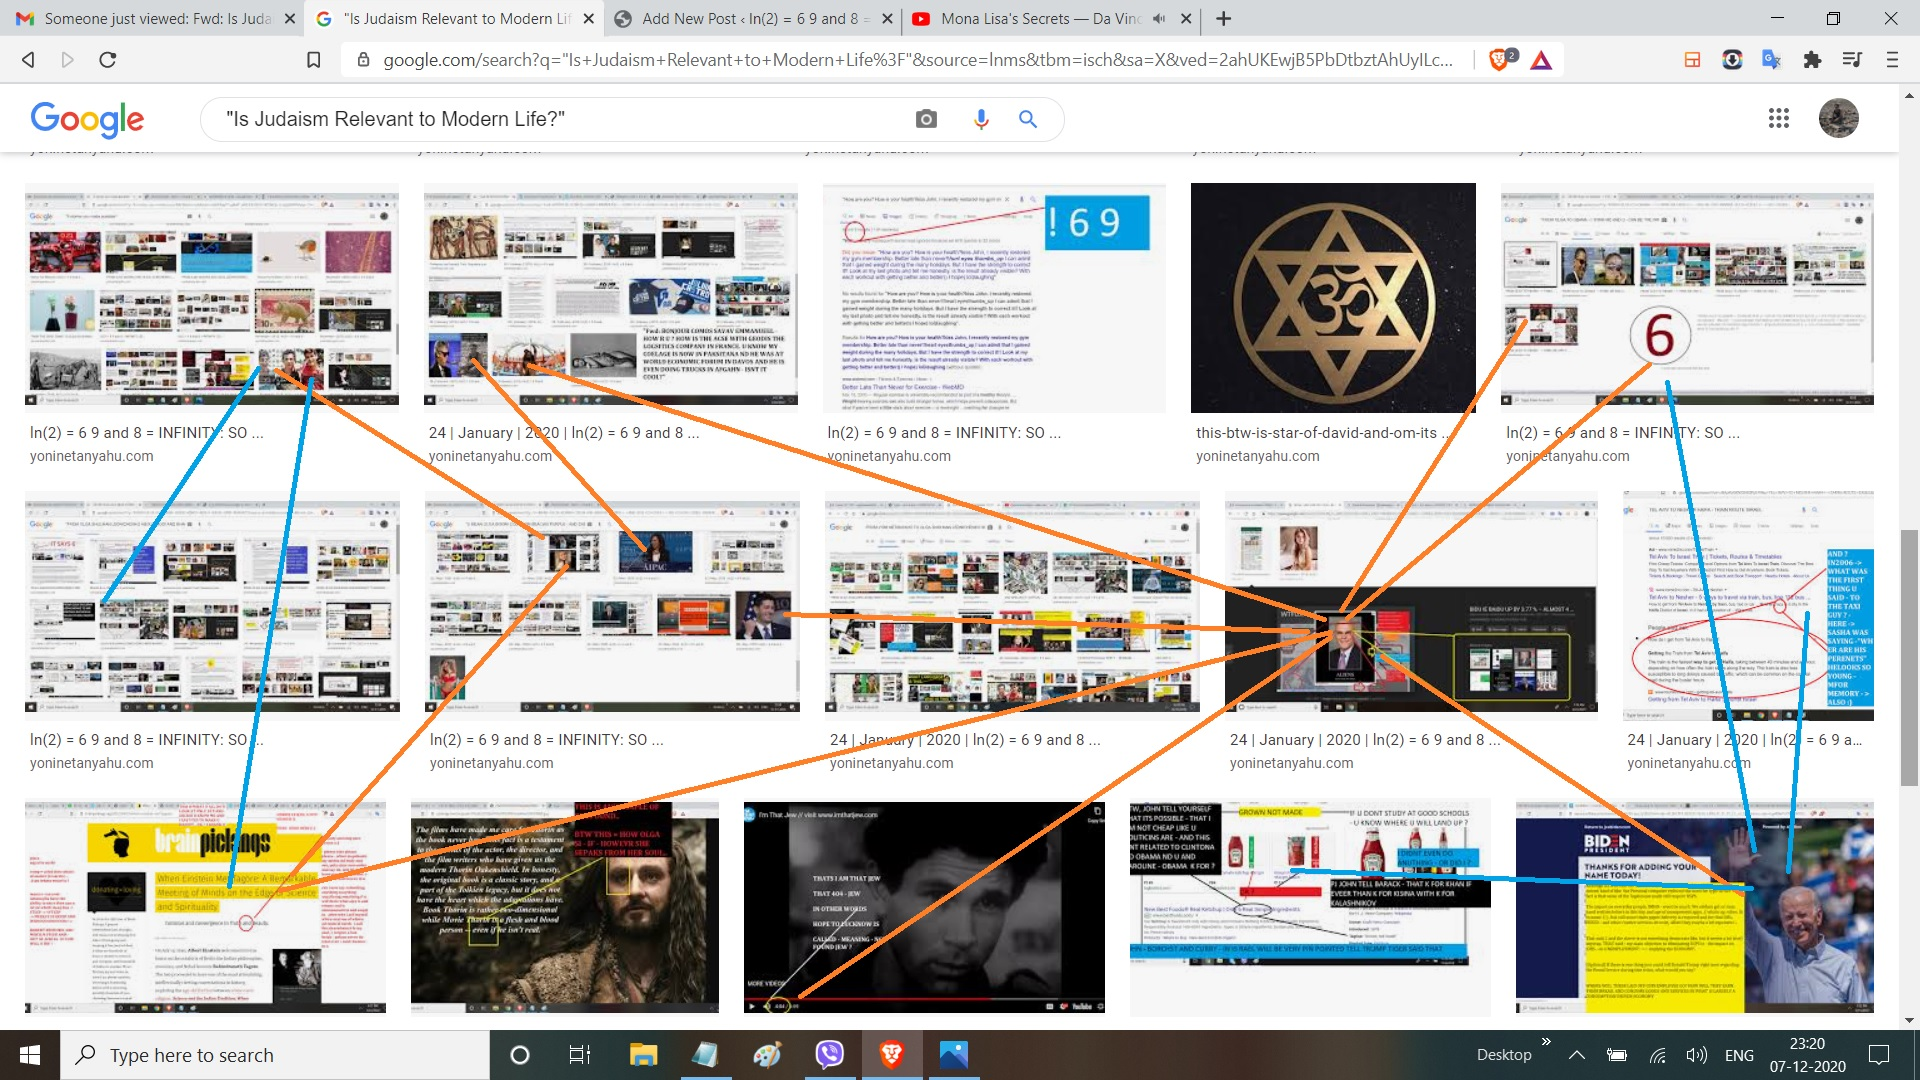 IS JUDAISM RELEVANT TO MDERN LIFE